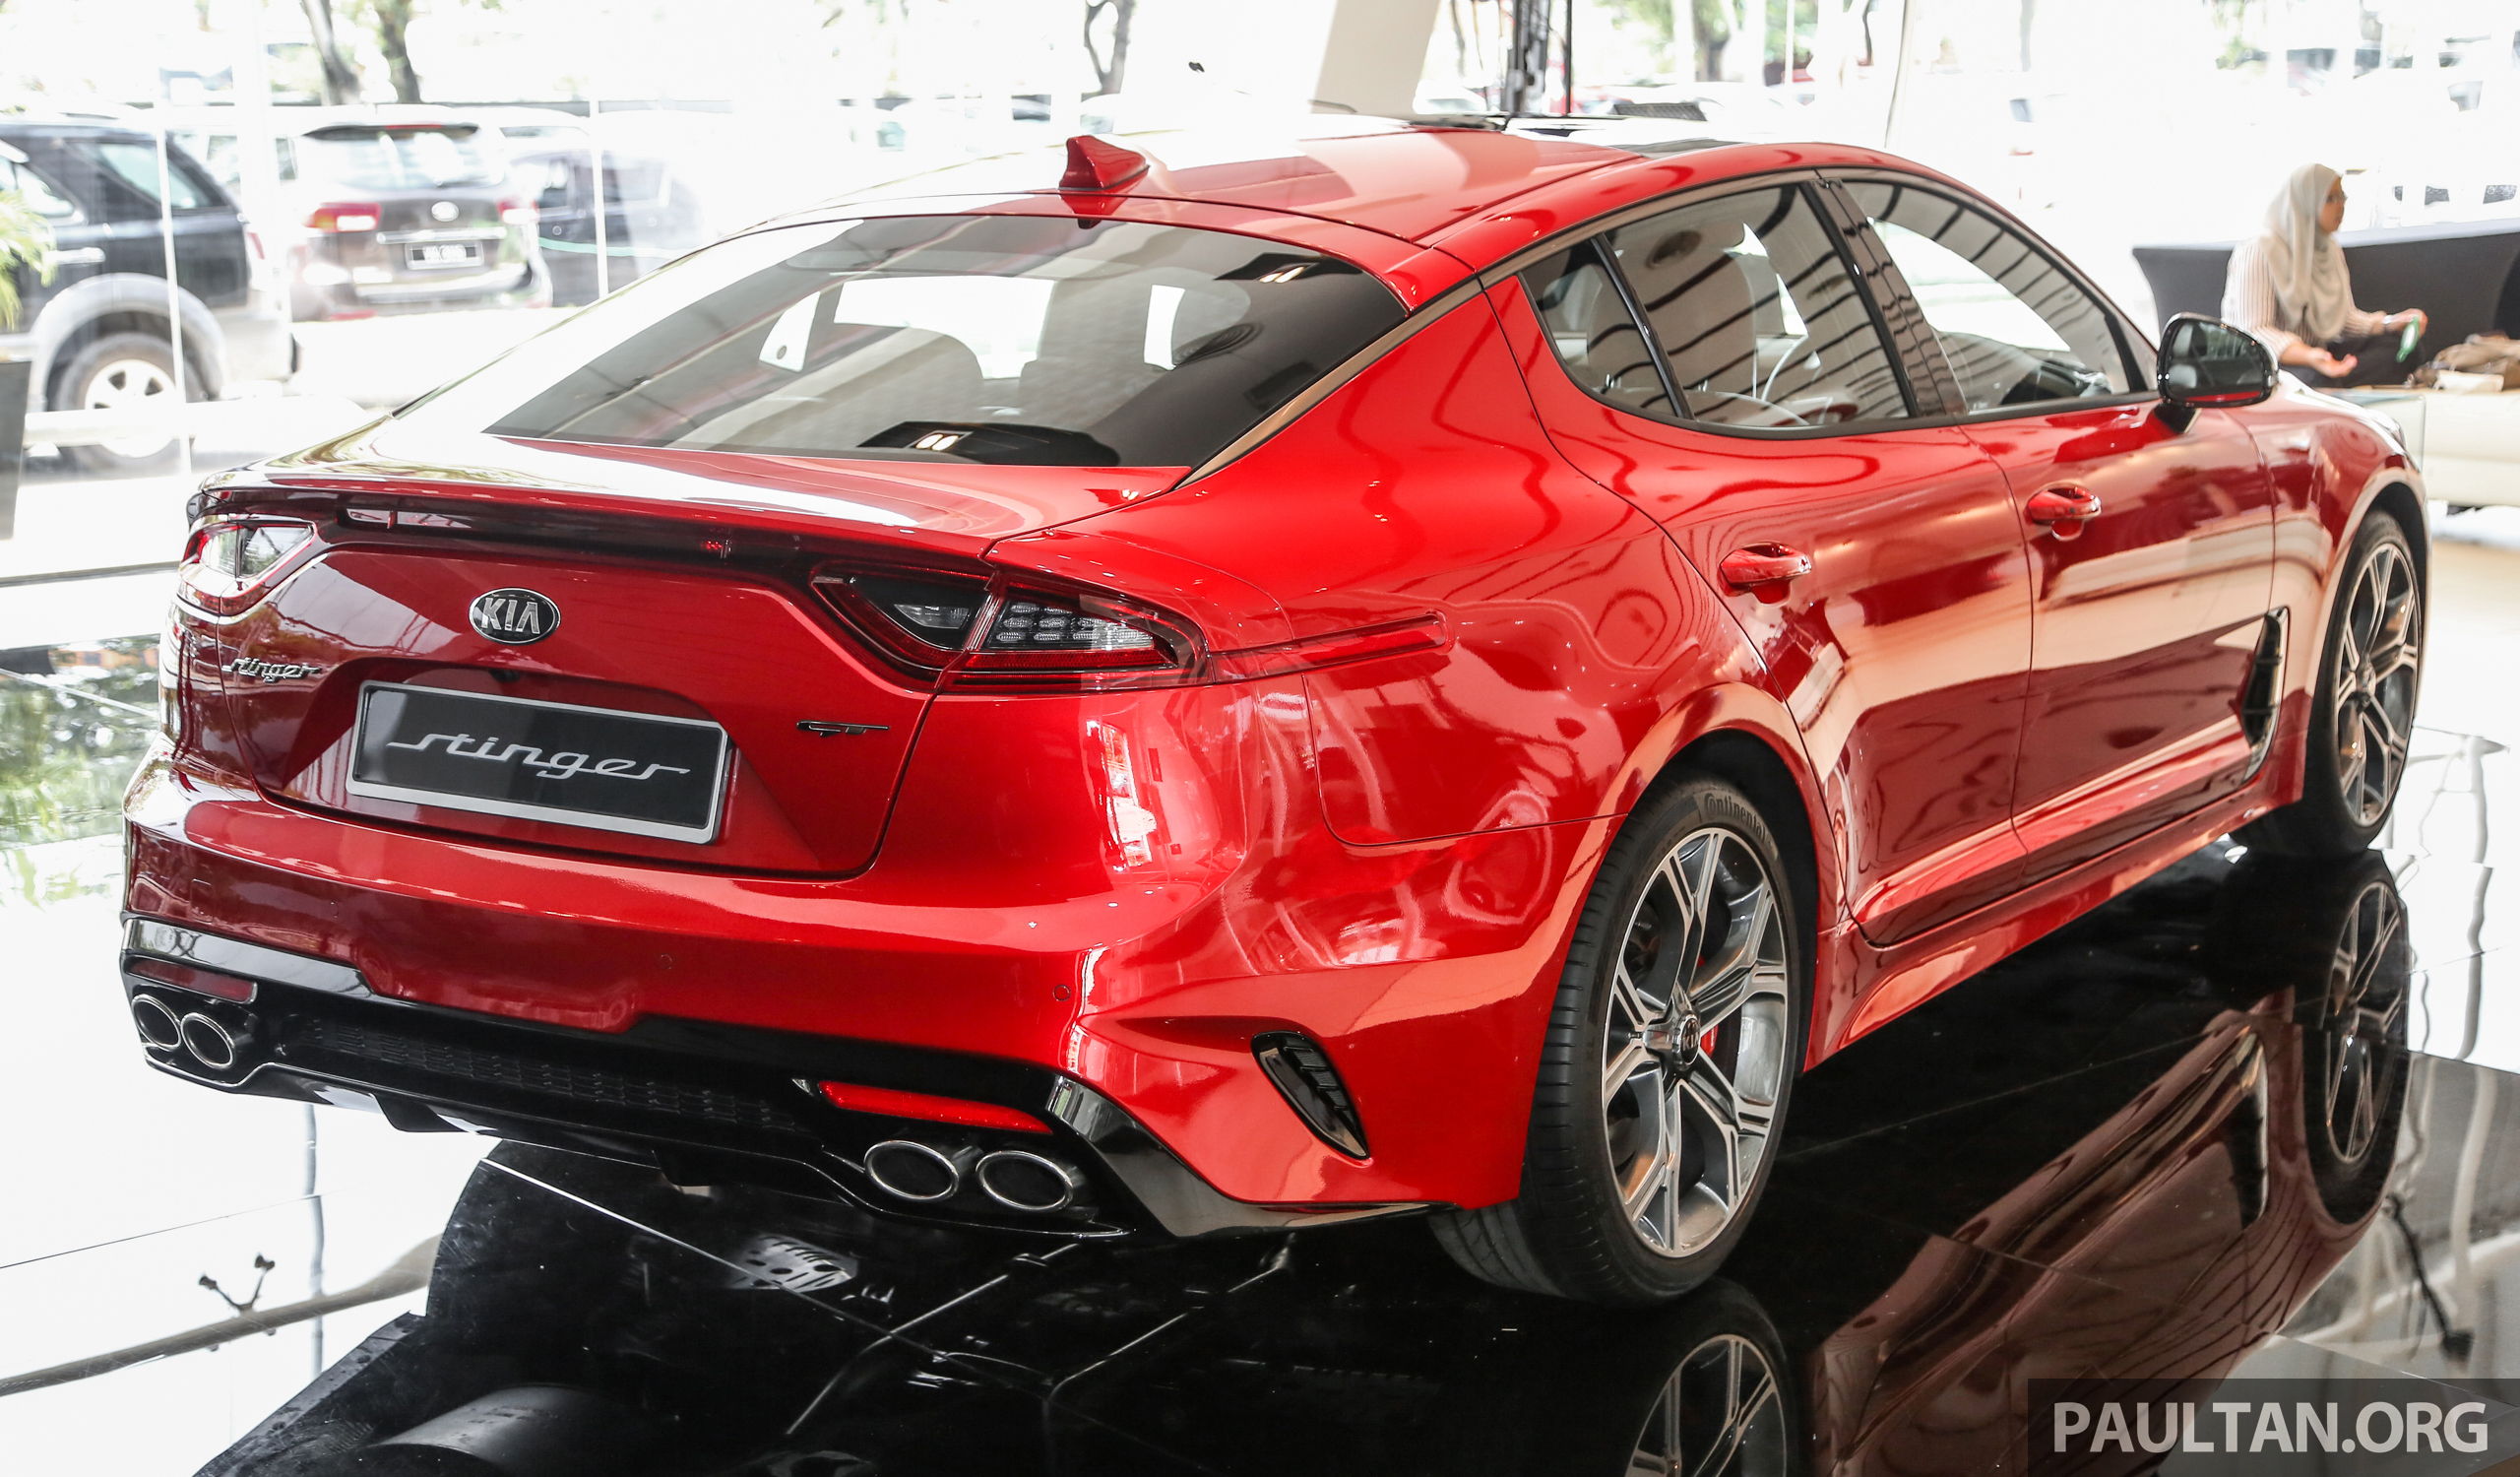 kia stinger launched in malaysia 251 hp 2 0 gt line and 365 hp 3 3 v6 gt cbu rwd rm240k to. Black Bedroom Furniture Sets. Home Design Ideas